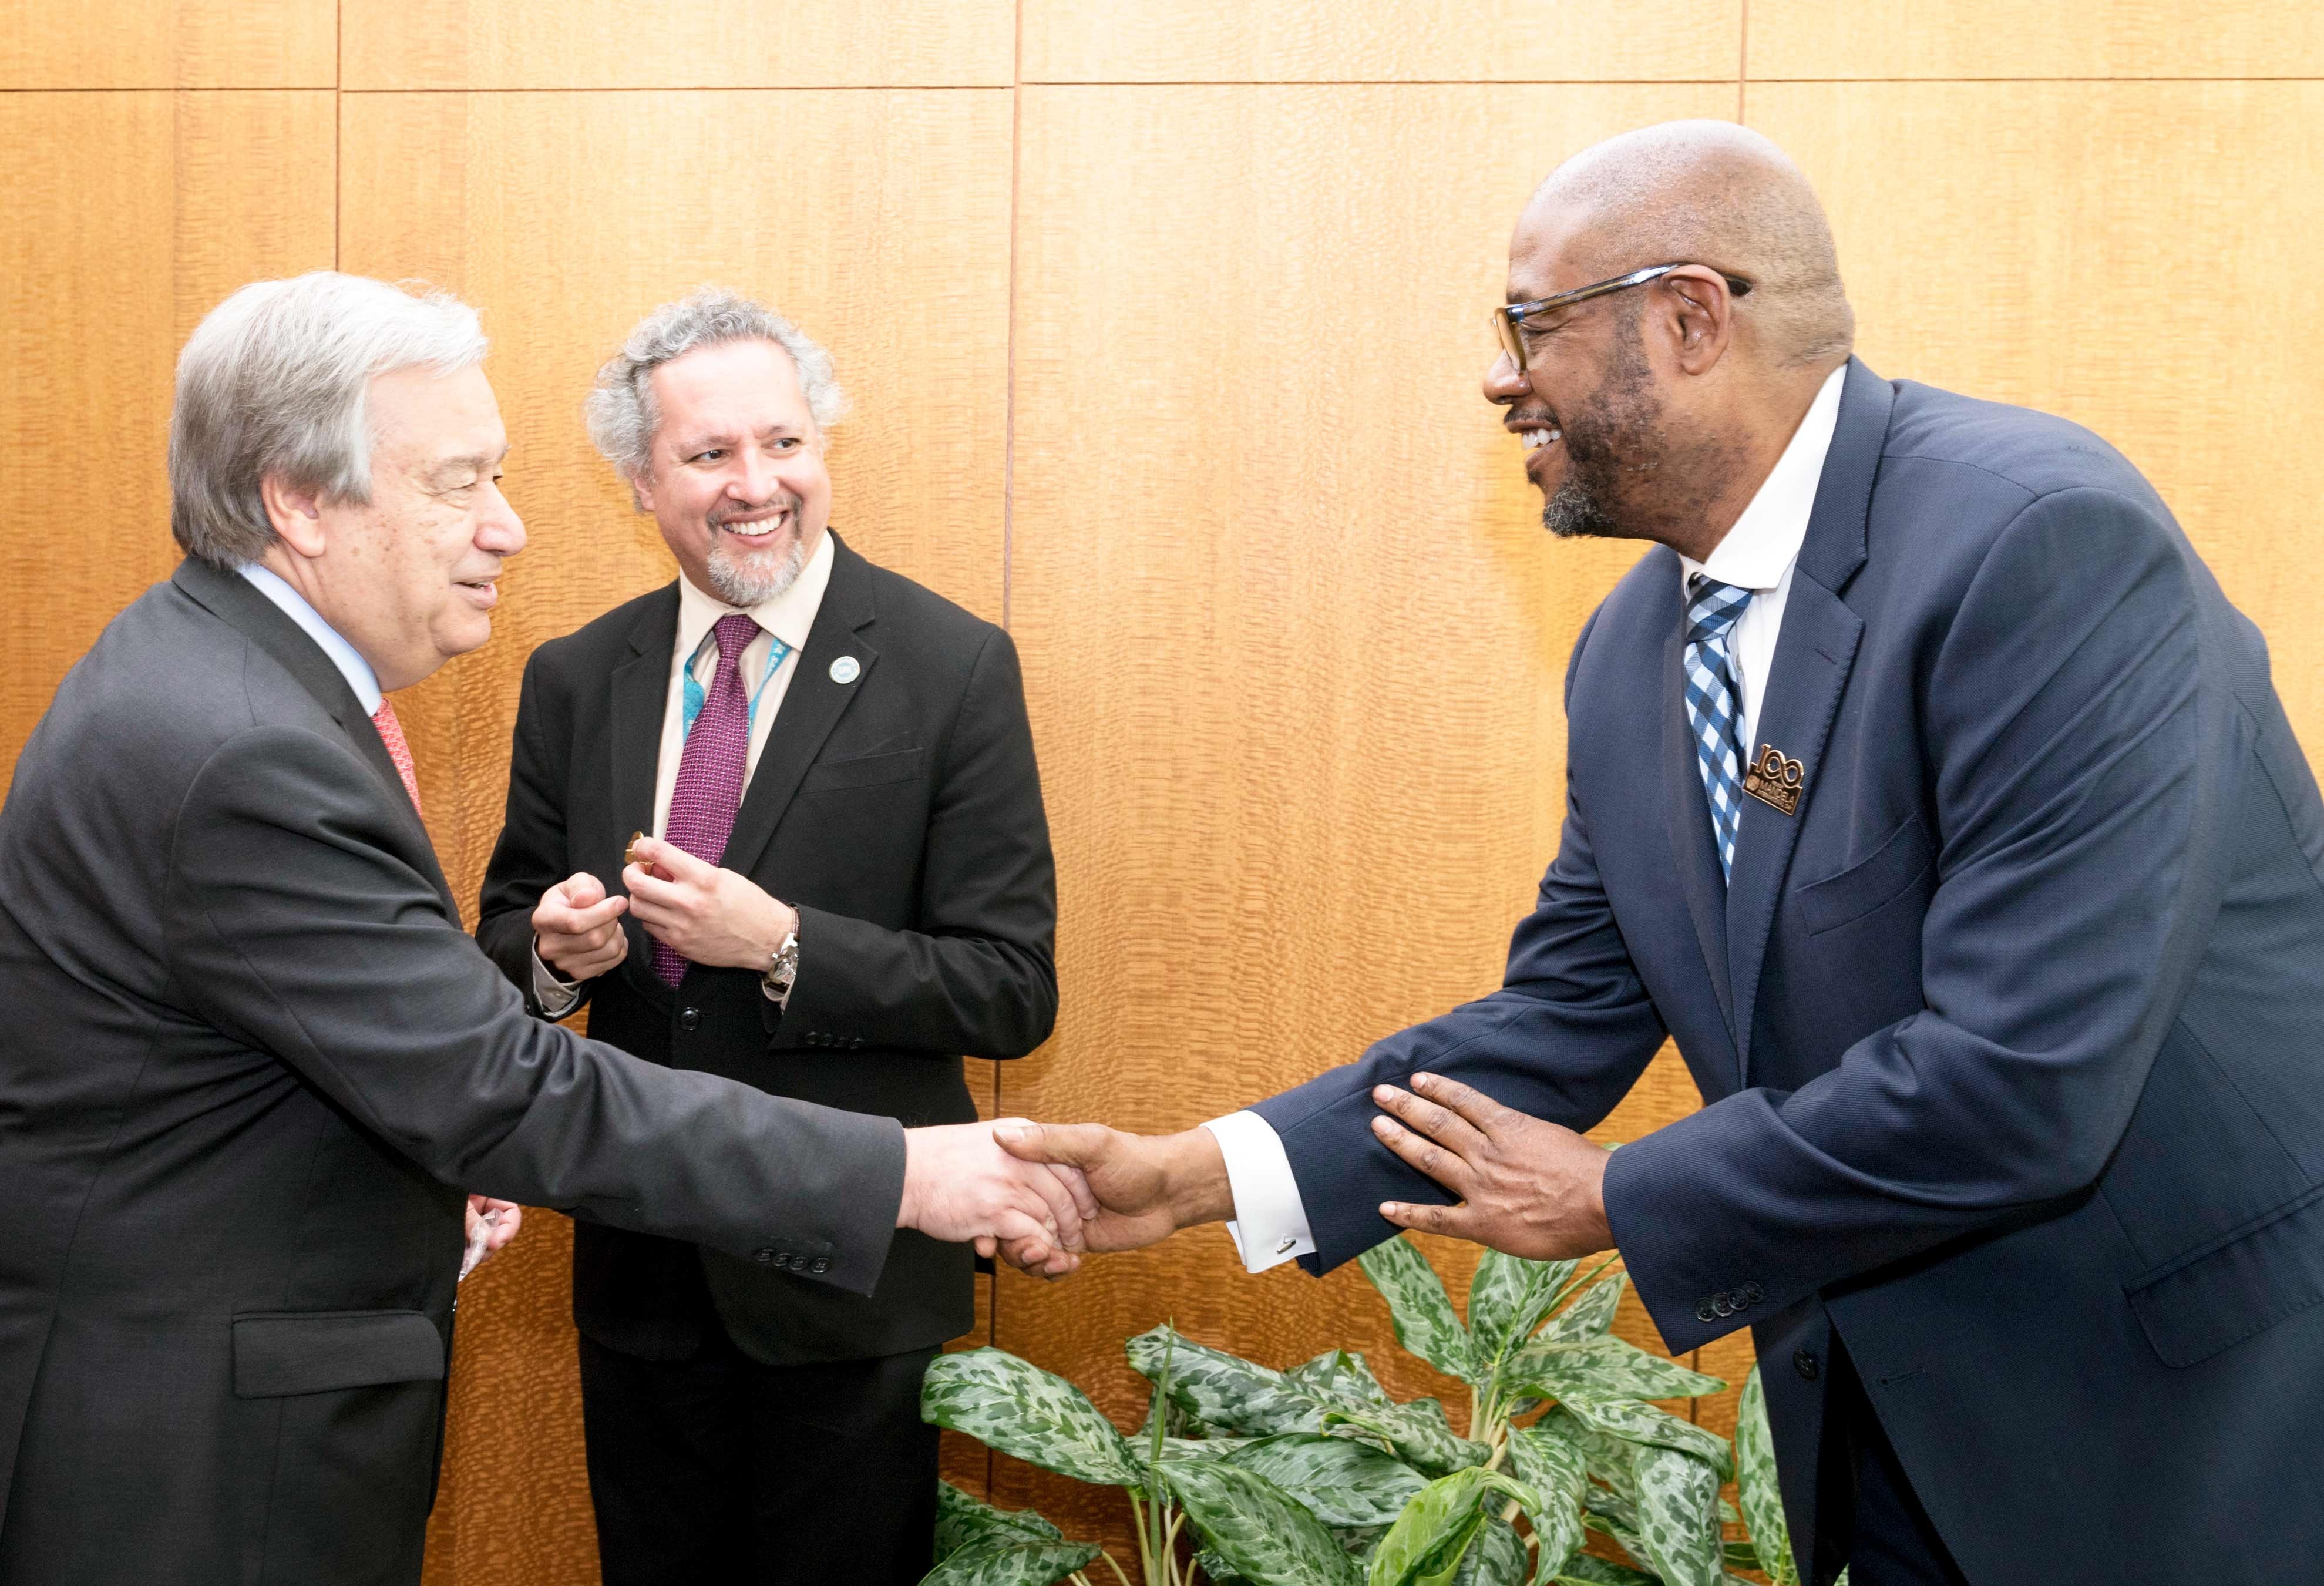 António Guterres et Forest Whitaker. © UN Photo/Rick Bajornas